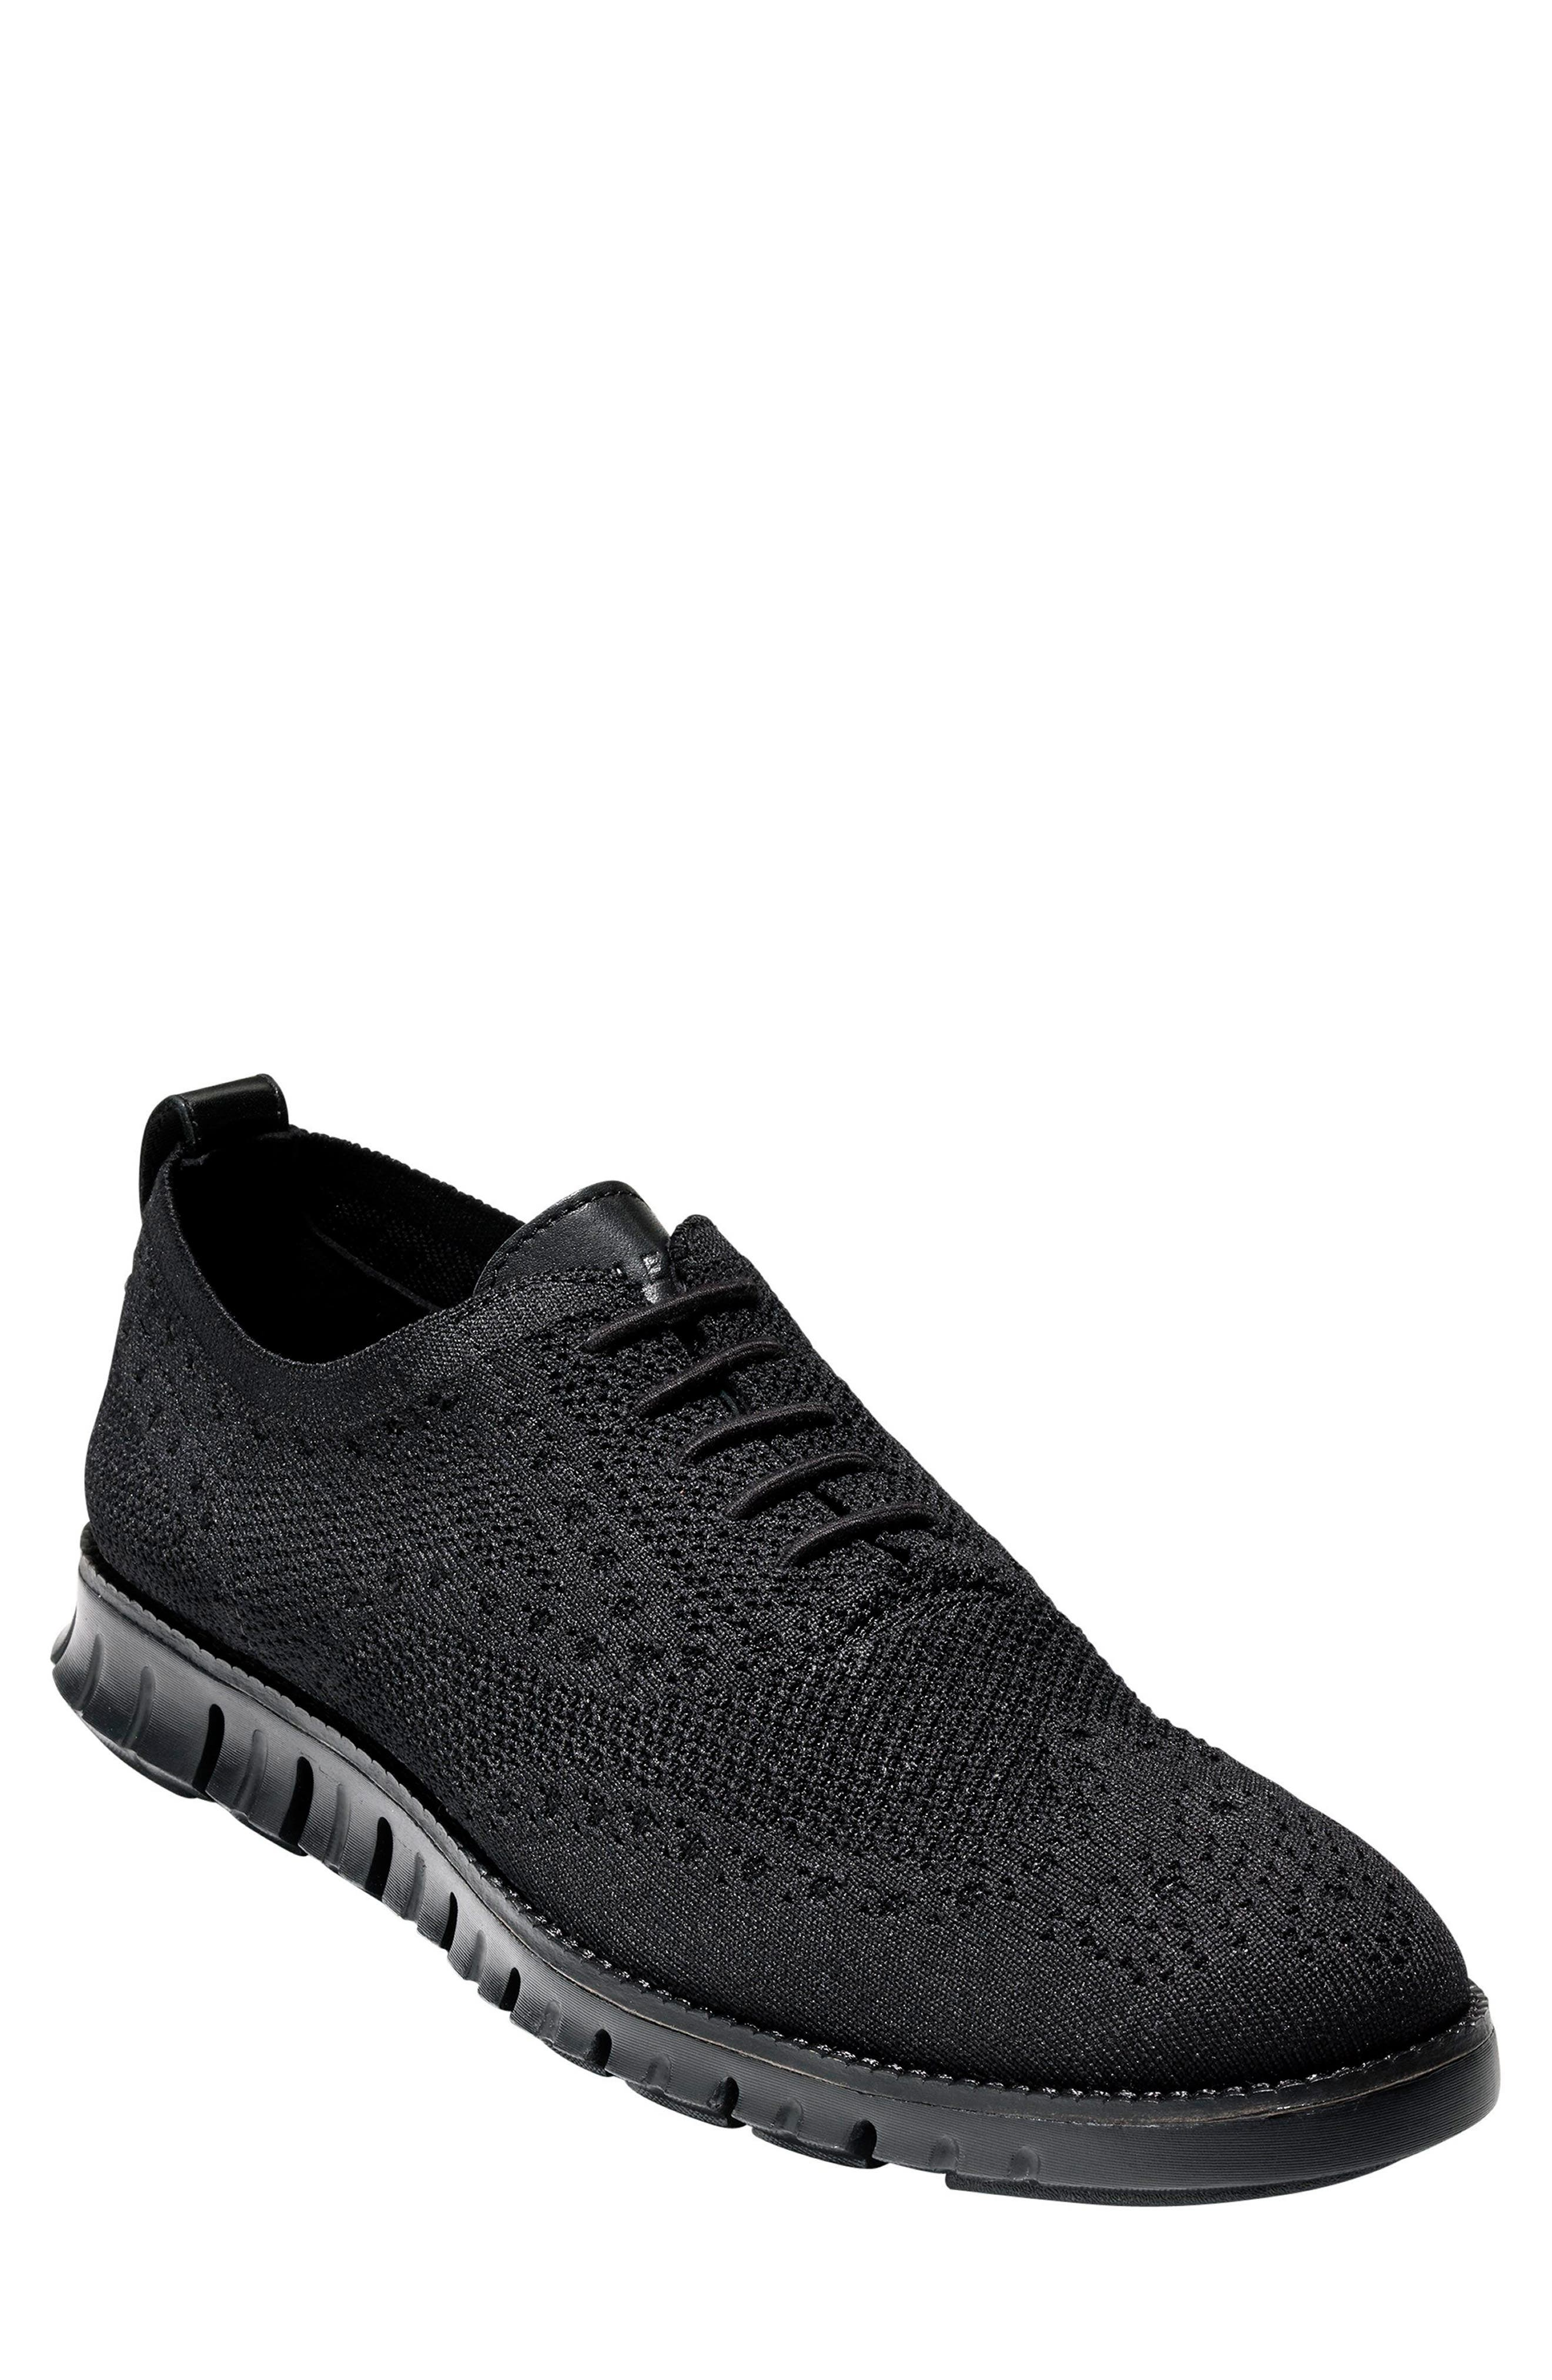 ZeroGrand Stitch-lite Wingtip Oxford,                         Main,                         color, Black